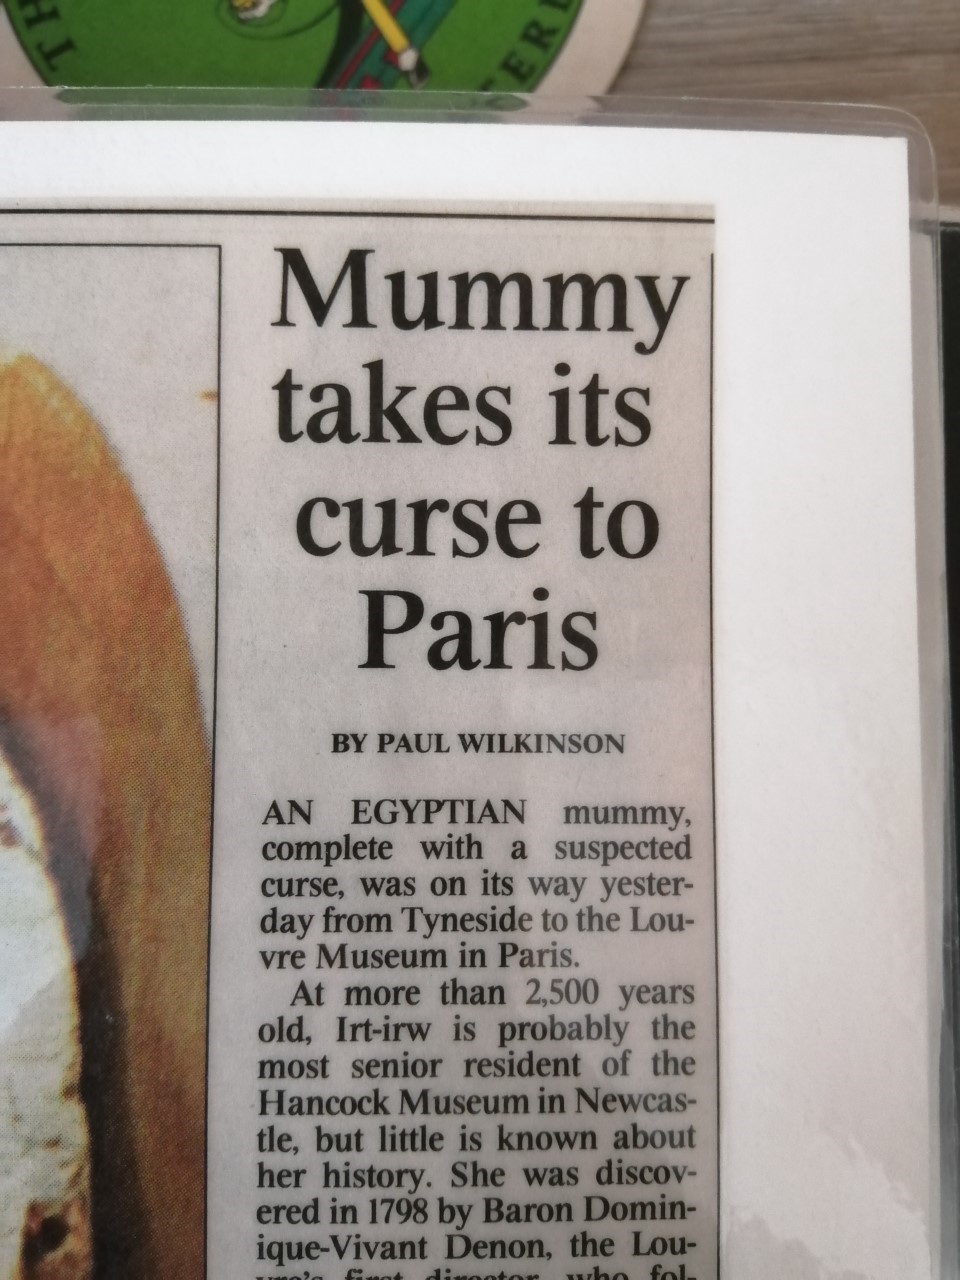 """Newspaper article reading """"Mummy takes its curse to Paris. An Egyptian mummy, complete with a suspected curse, was on its way yesterday from Tyneside to the Louvre Museum in Paris."""""""